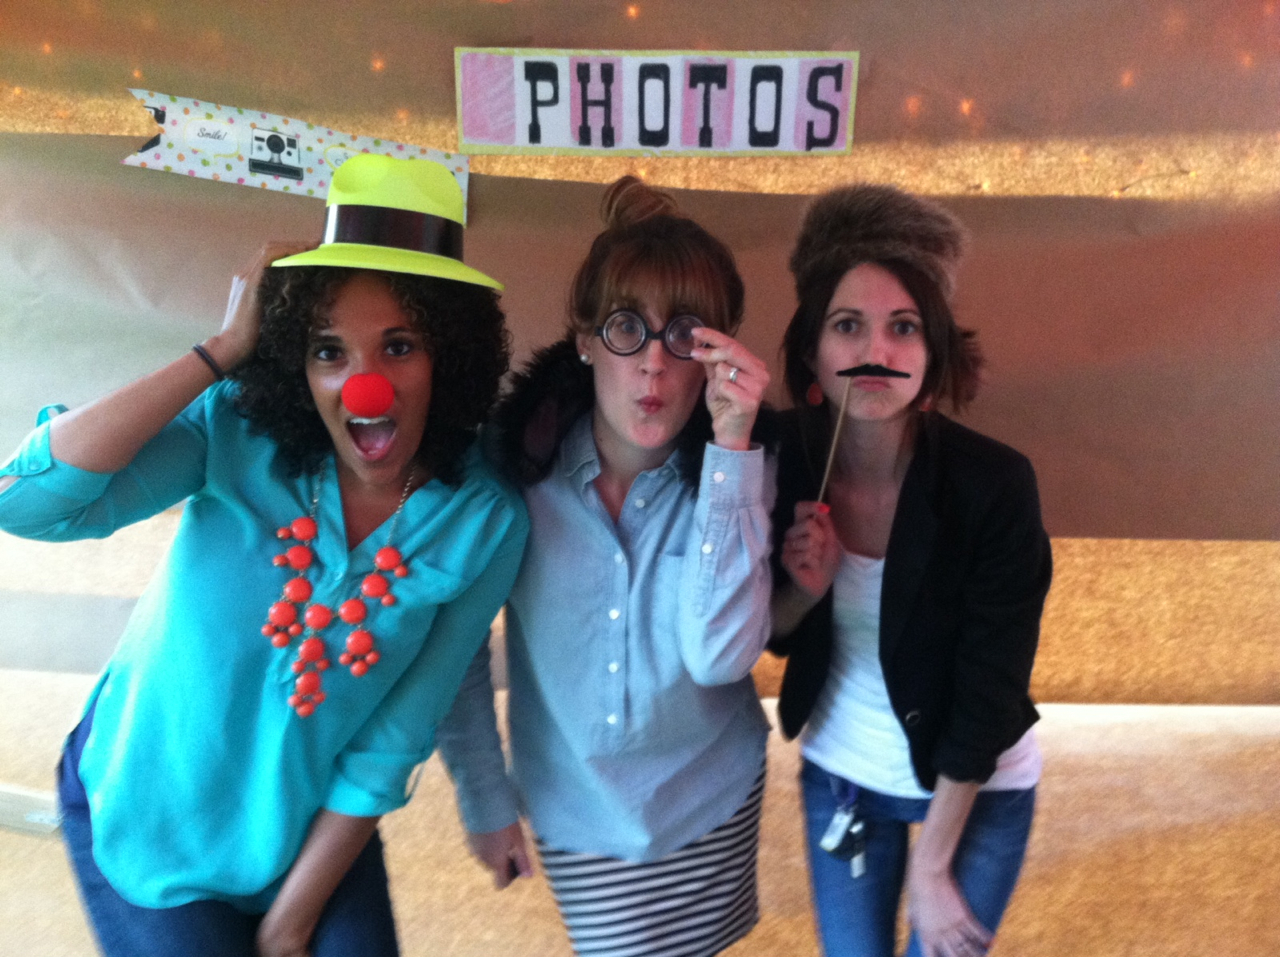 Trav's sister Kaydra's grad party. We had way too much fun in the photo booth.